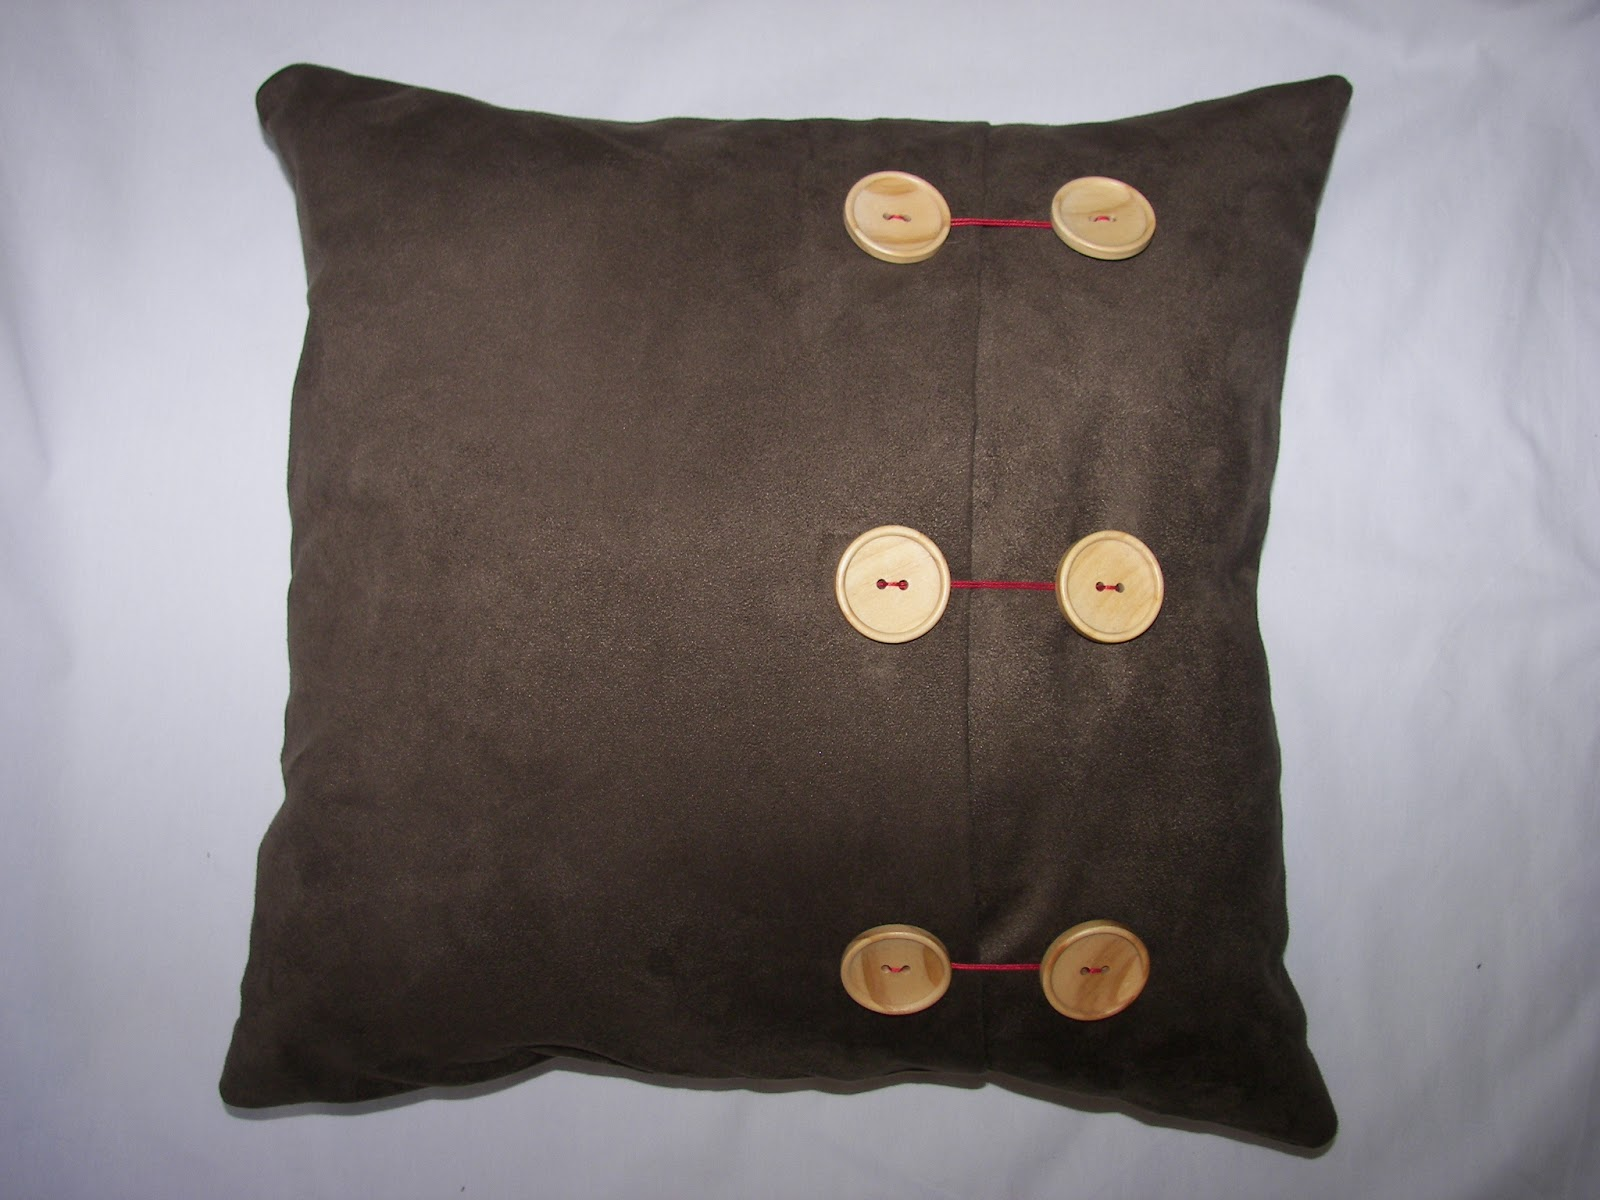 uniquecozytreasures how to make envelope style throw pillow covers. Black Bedroom Furniture Sets. Home Design Ideas